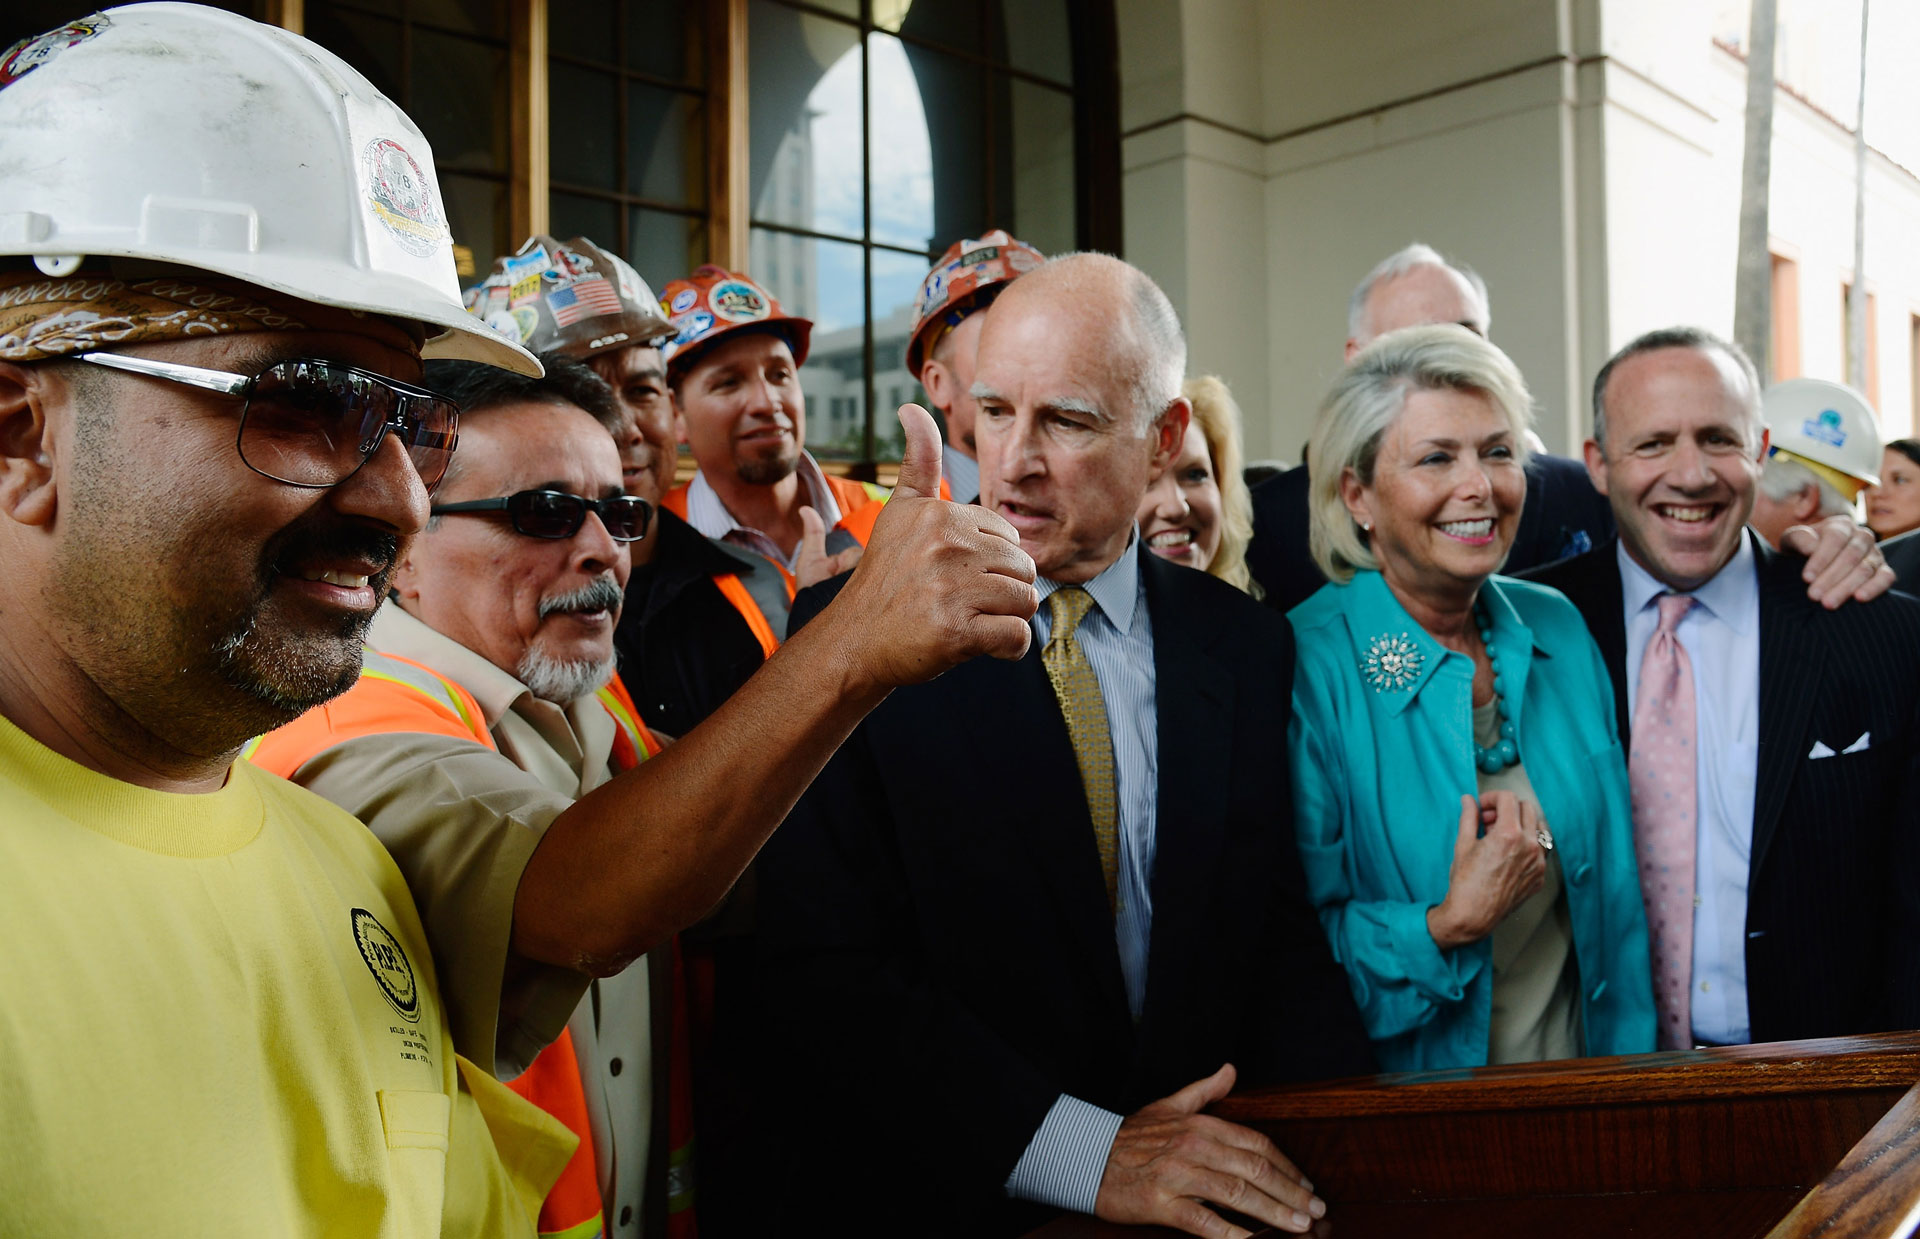 Gov. Jerry Brown is surrounded by construction workers and elected officials after signing legislation authorizing initial construction of the high-speed rail line at Union Station on July 18, 2012 in Los Angeles.